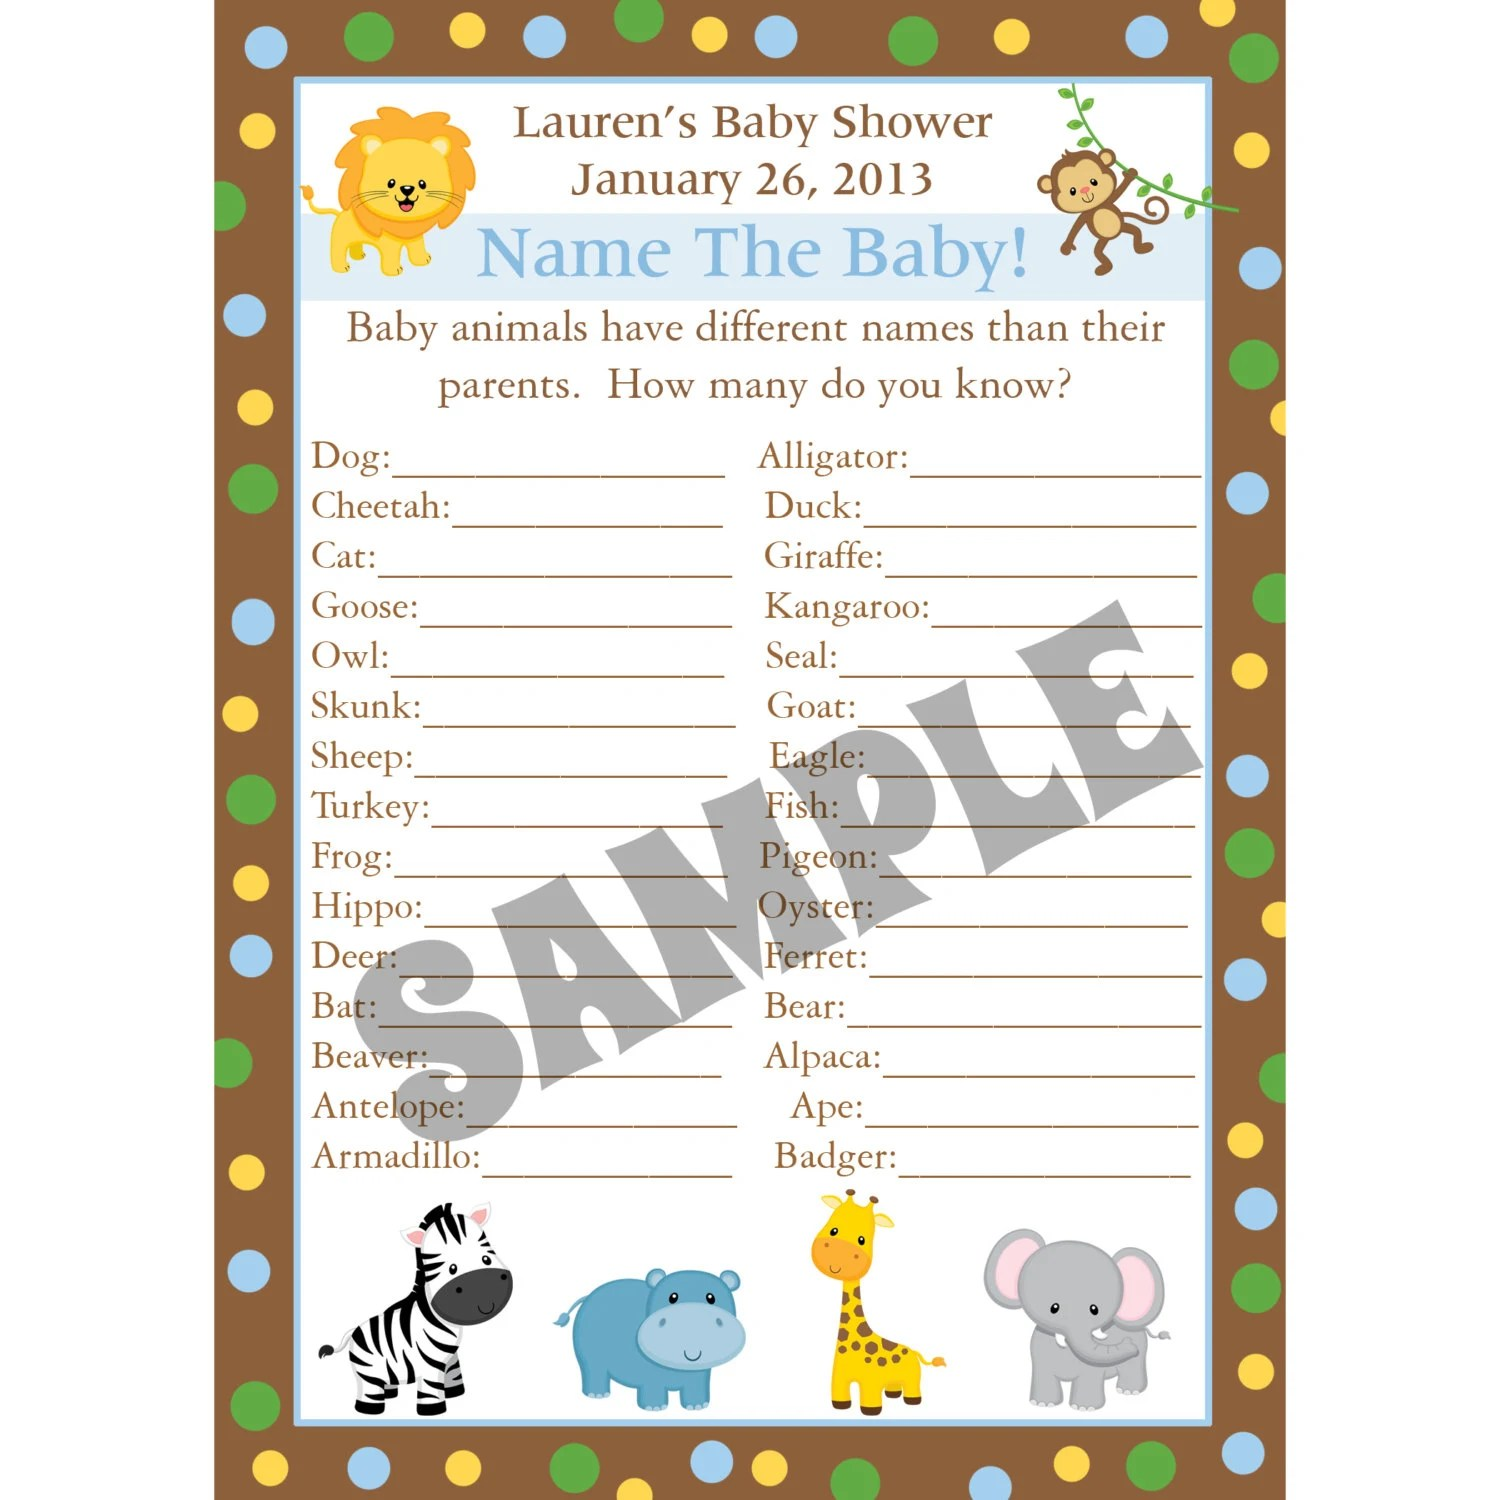 24 Personalized Baby Shower Baby Animal Name Game Cards